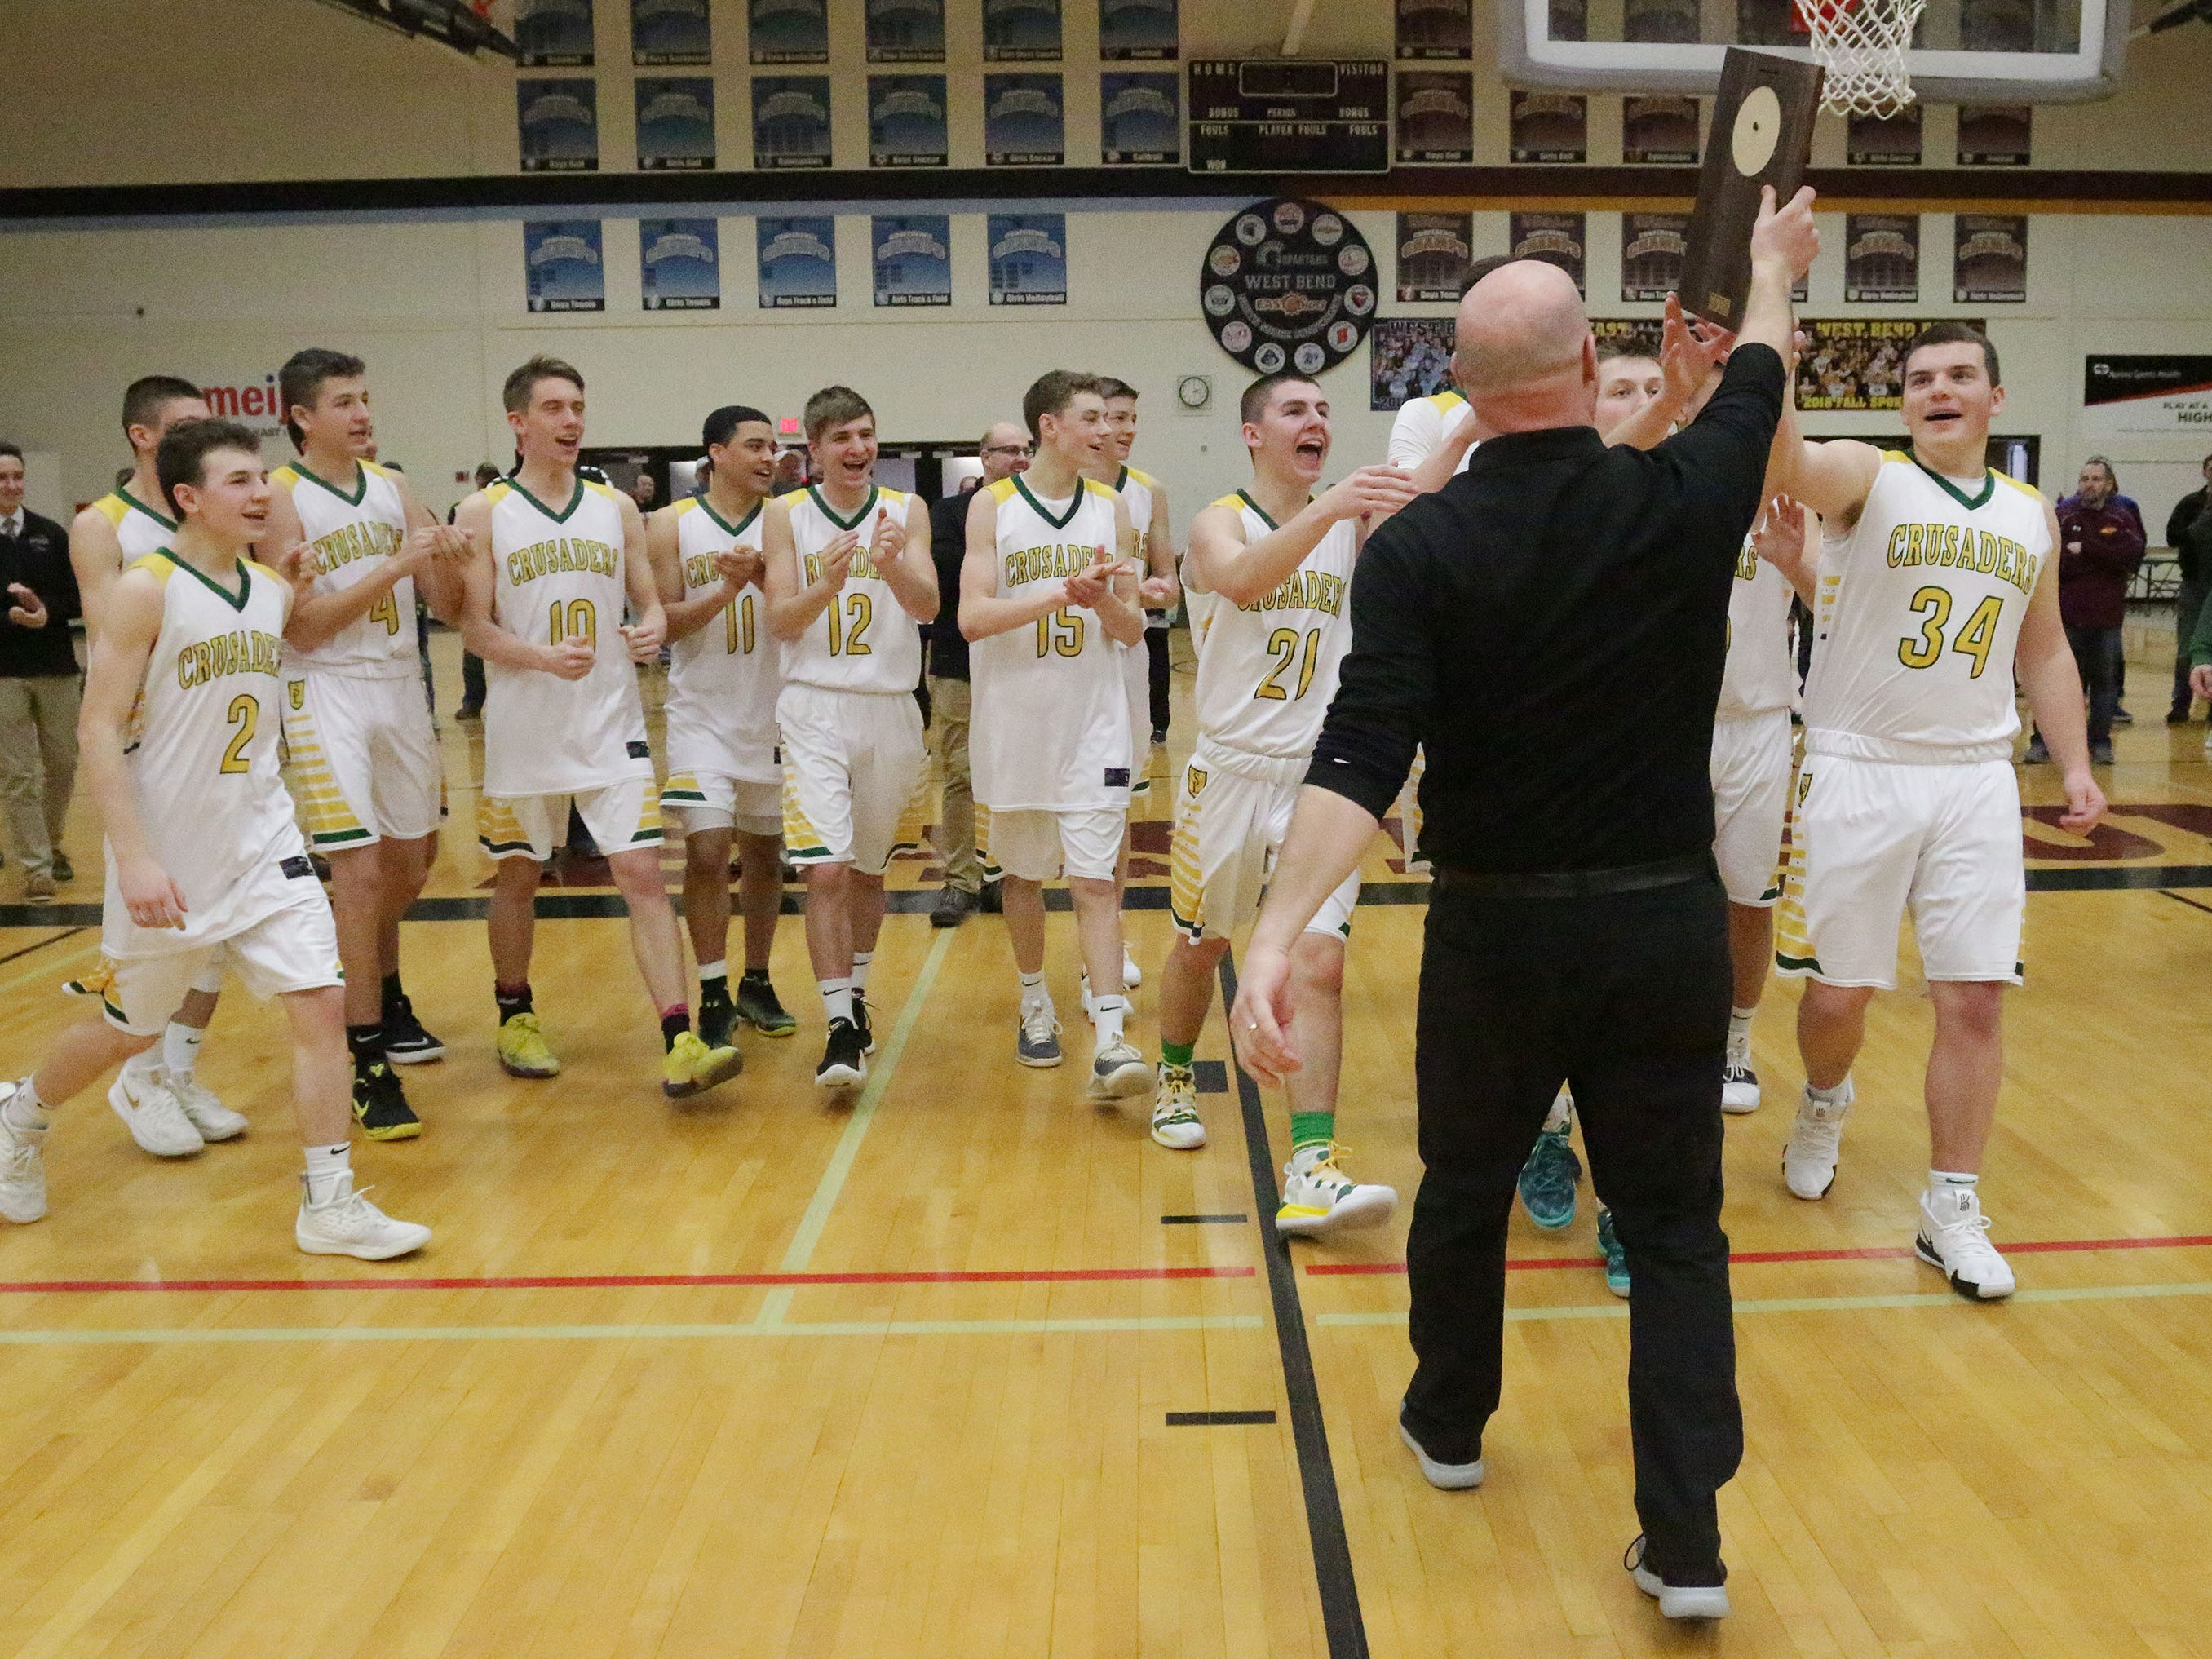 Sheboygan Lutheran coach Nick Verhagen lifts high the WIAA, Div. 5 sectional trophy by his team following their 83-69 win over Rio, Saturday, March 9, 2019, in Sheboygan, Wis.